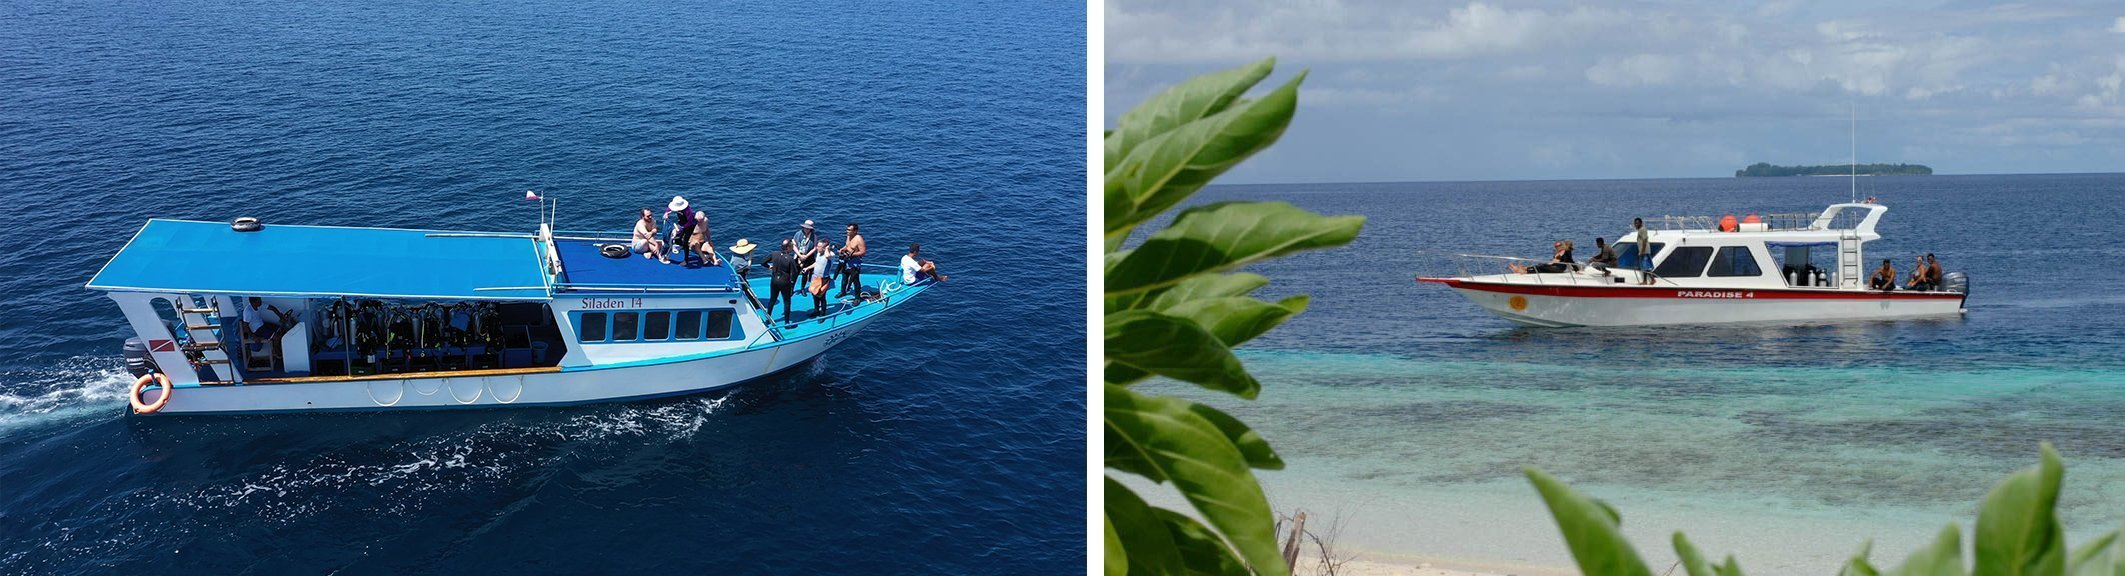 Siladen and Papua Paradise snorkel boats